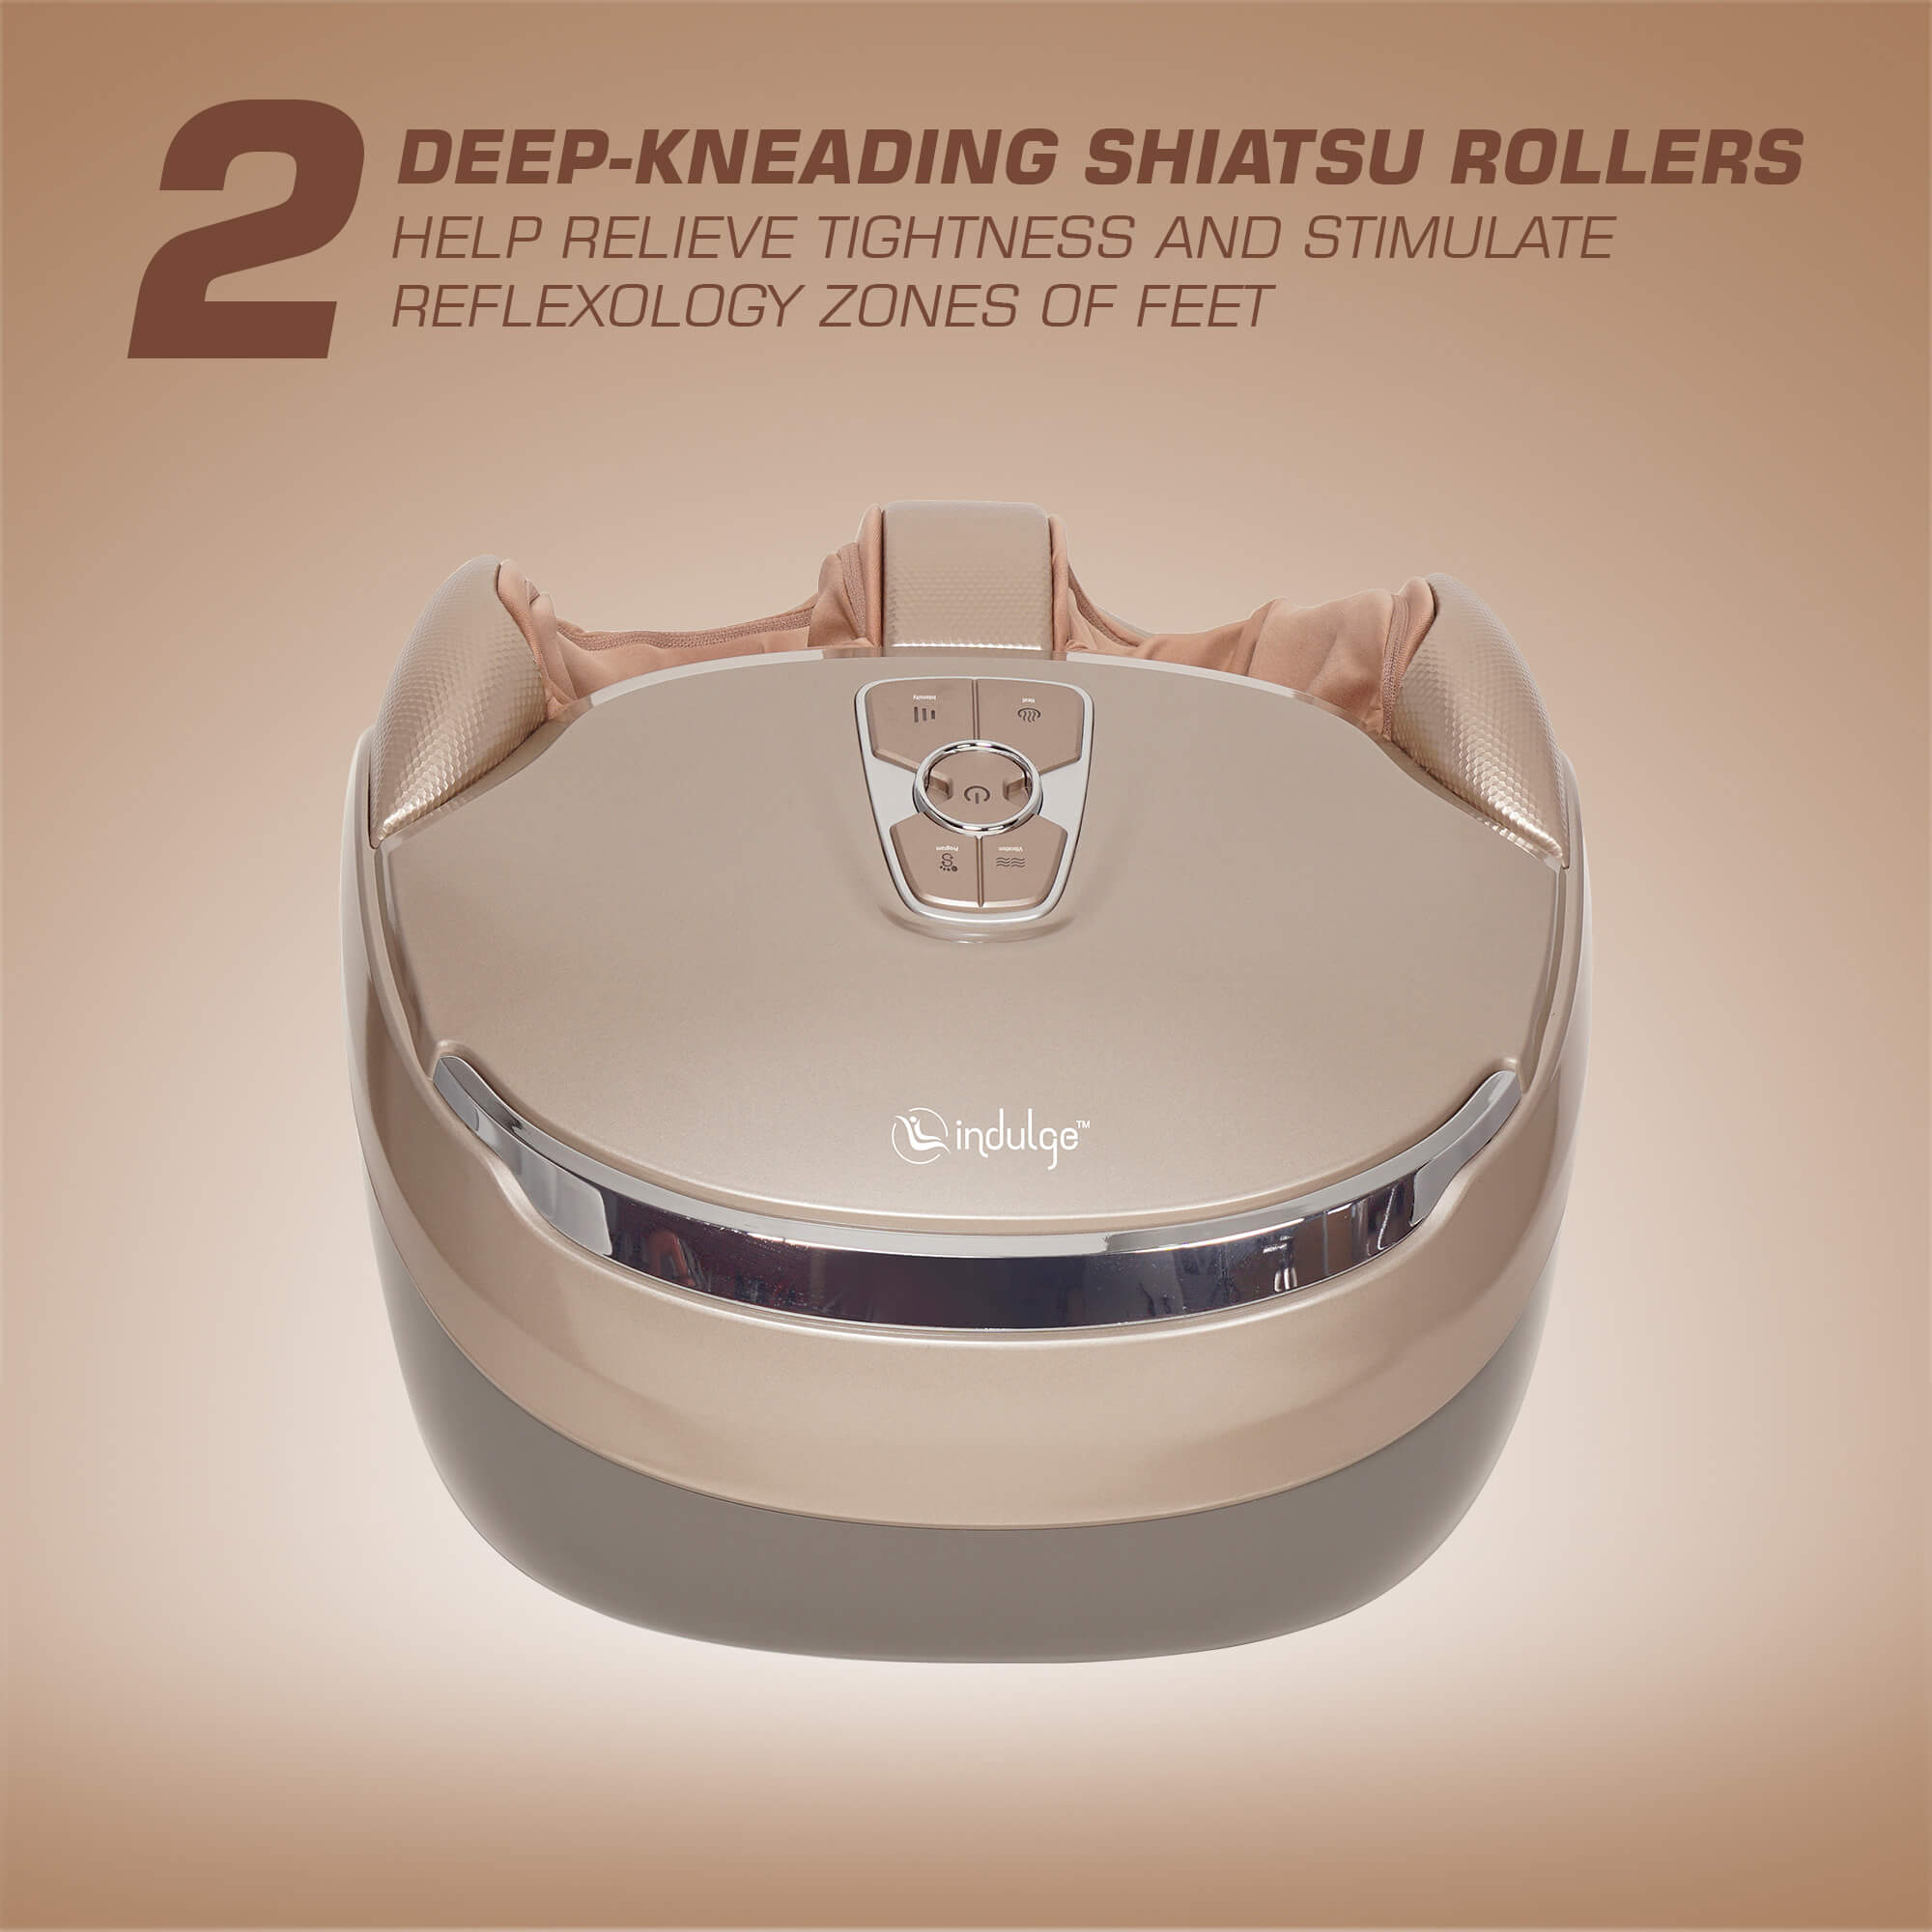 Indulge IF-839 Leg Massager